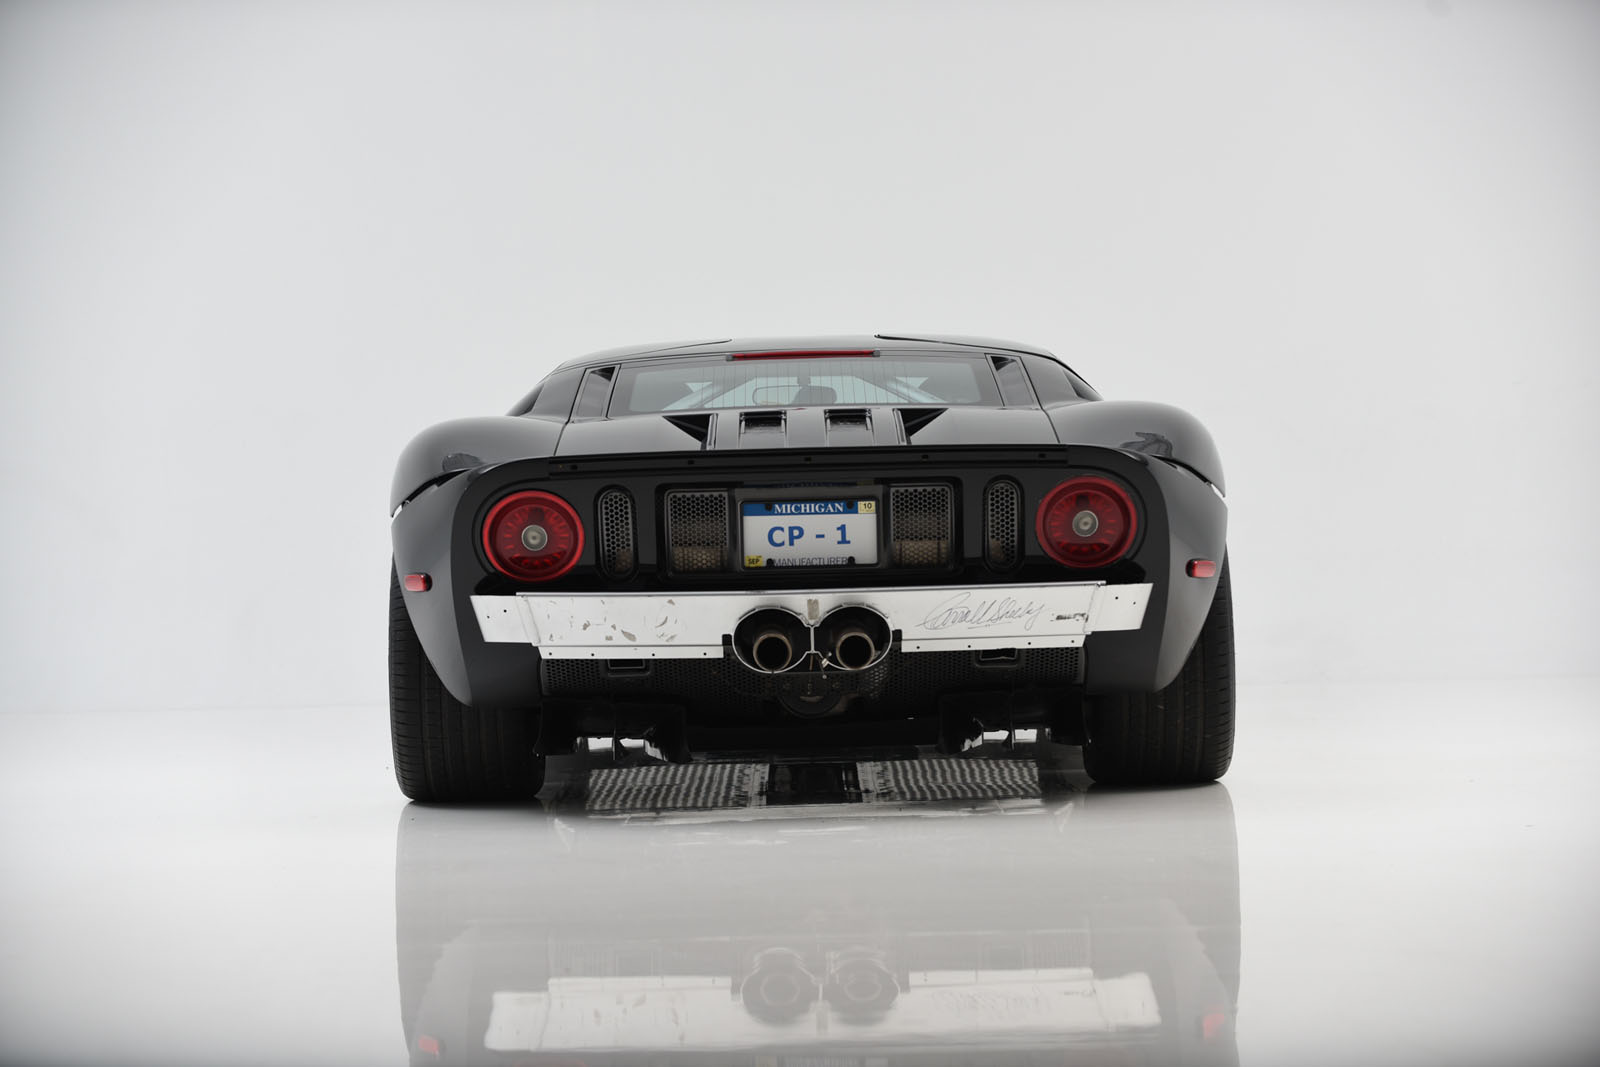 Ford GT Prototype CP-1 auction (20)